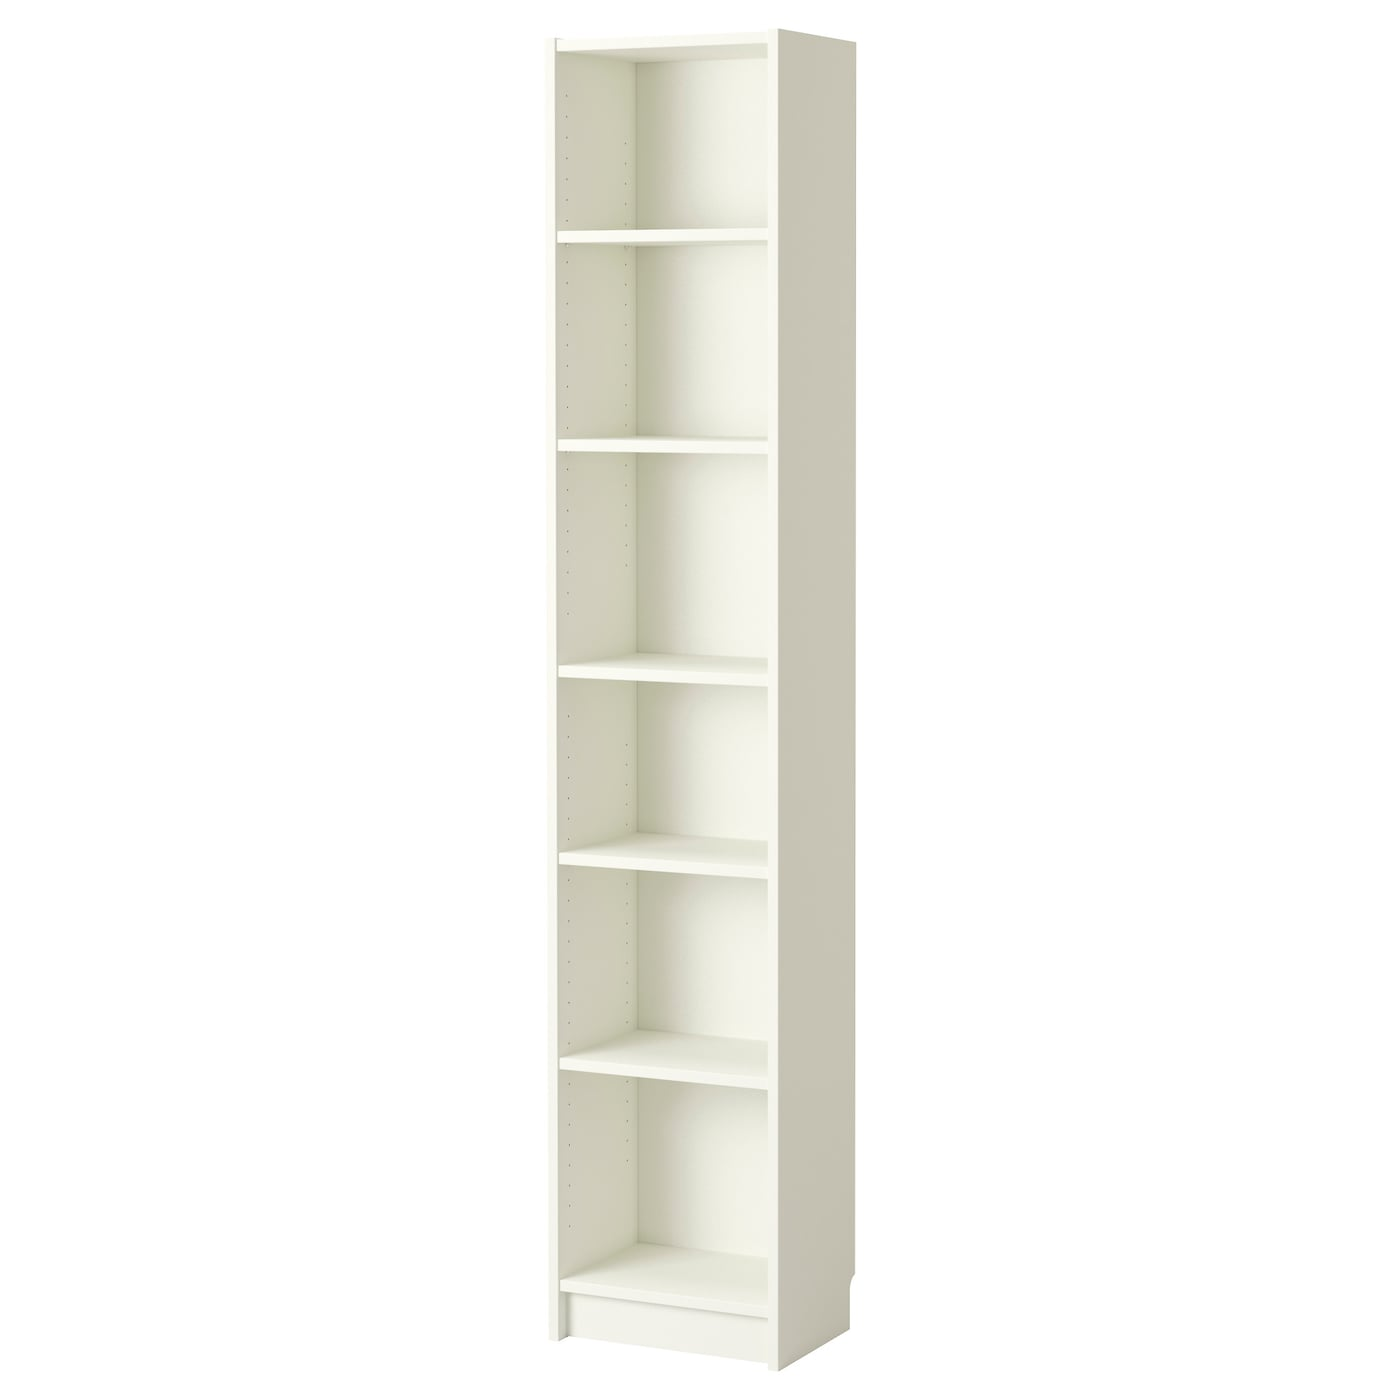 Billy bookcase white 40x28x202 cm ikea for Meuble 5 cases ikea